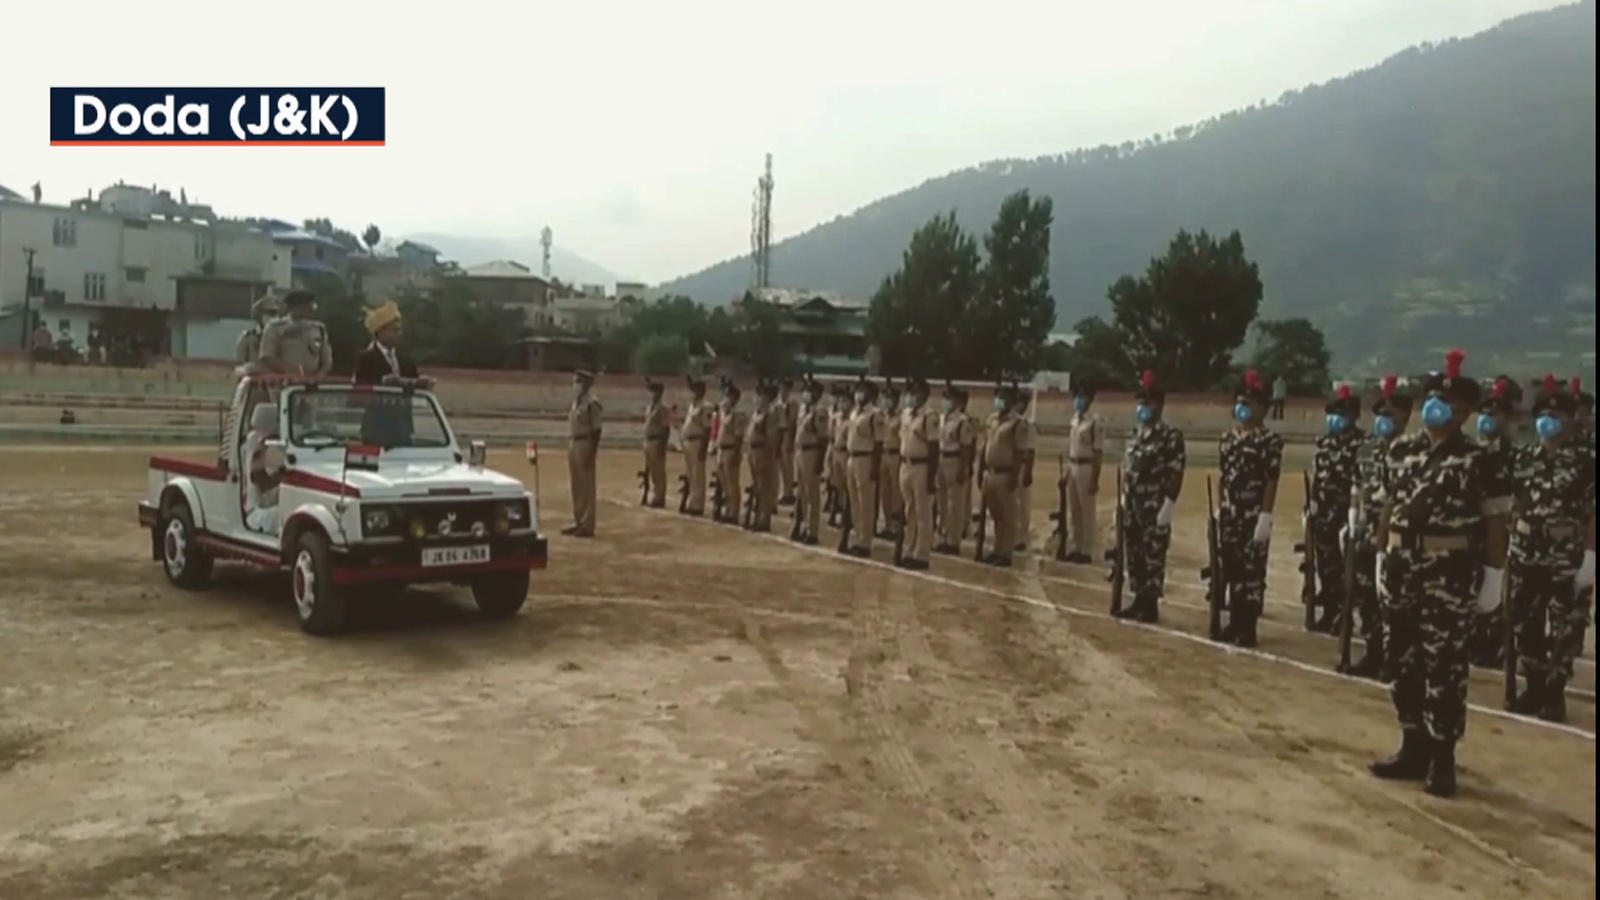 full-dress-rehearsal-held-in-jks-doda-for-independence-day-celebrations